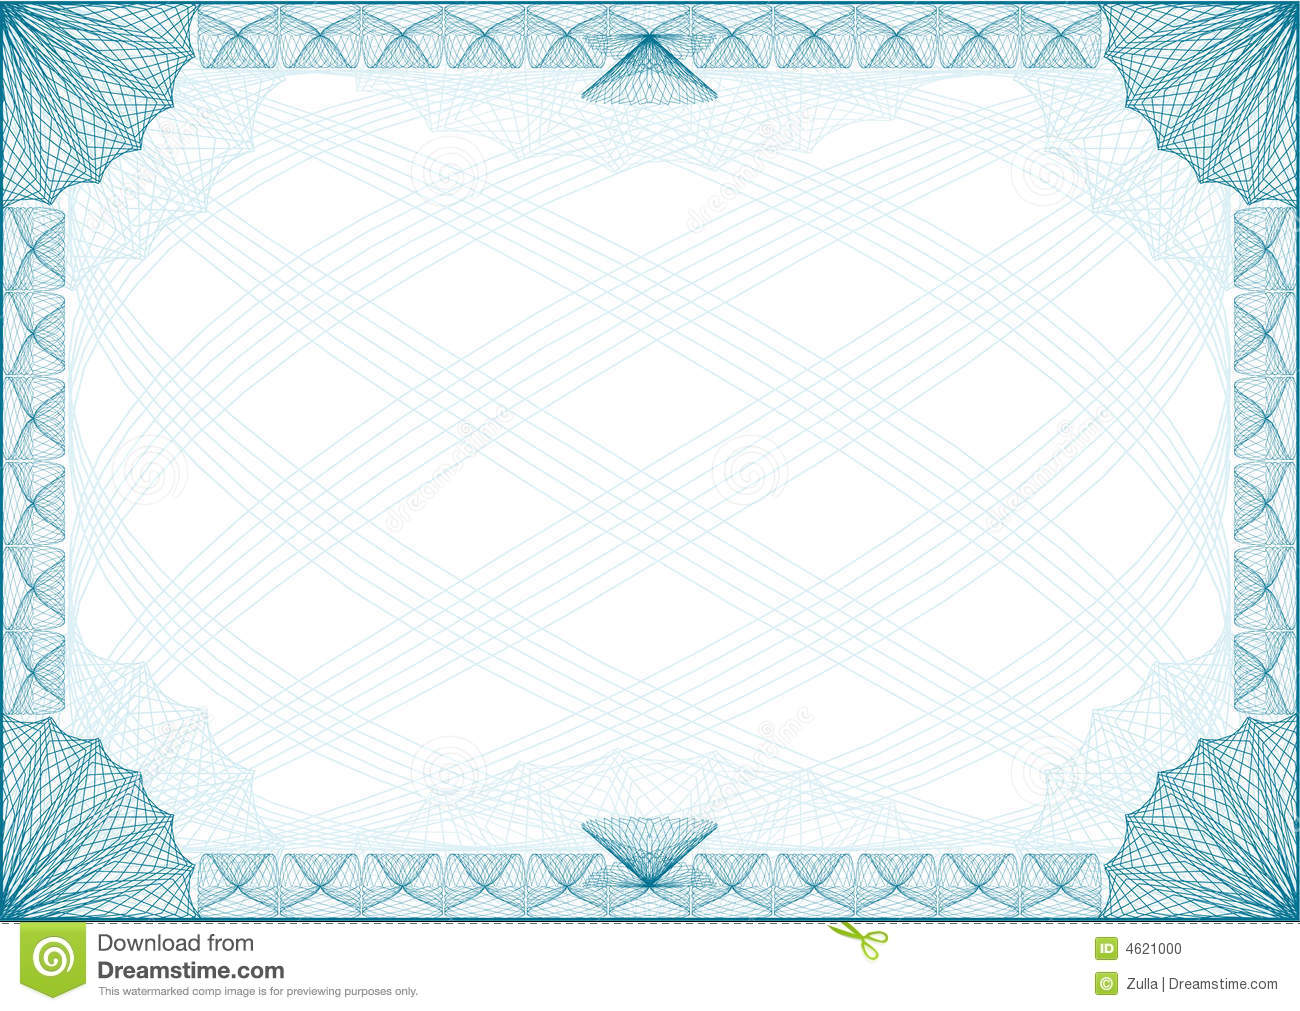 Certificate Frame Border Royalty Free Stock Photos Image 23498958